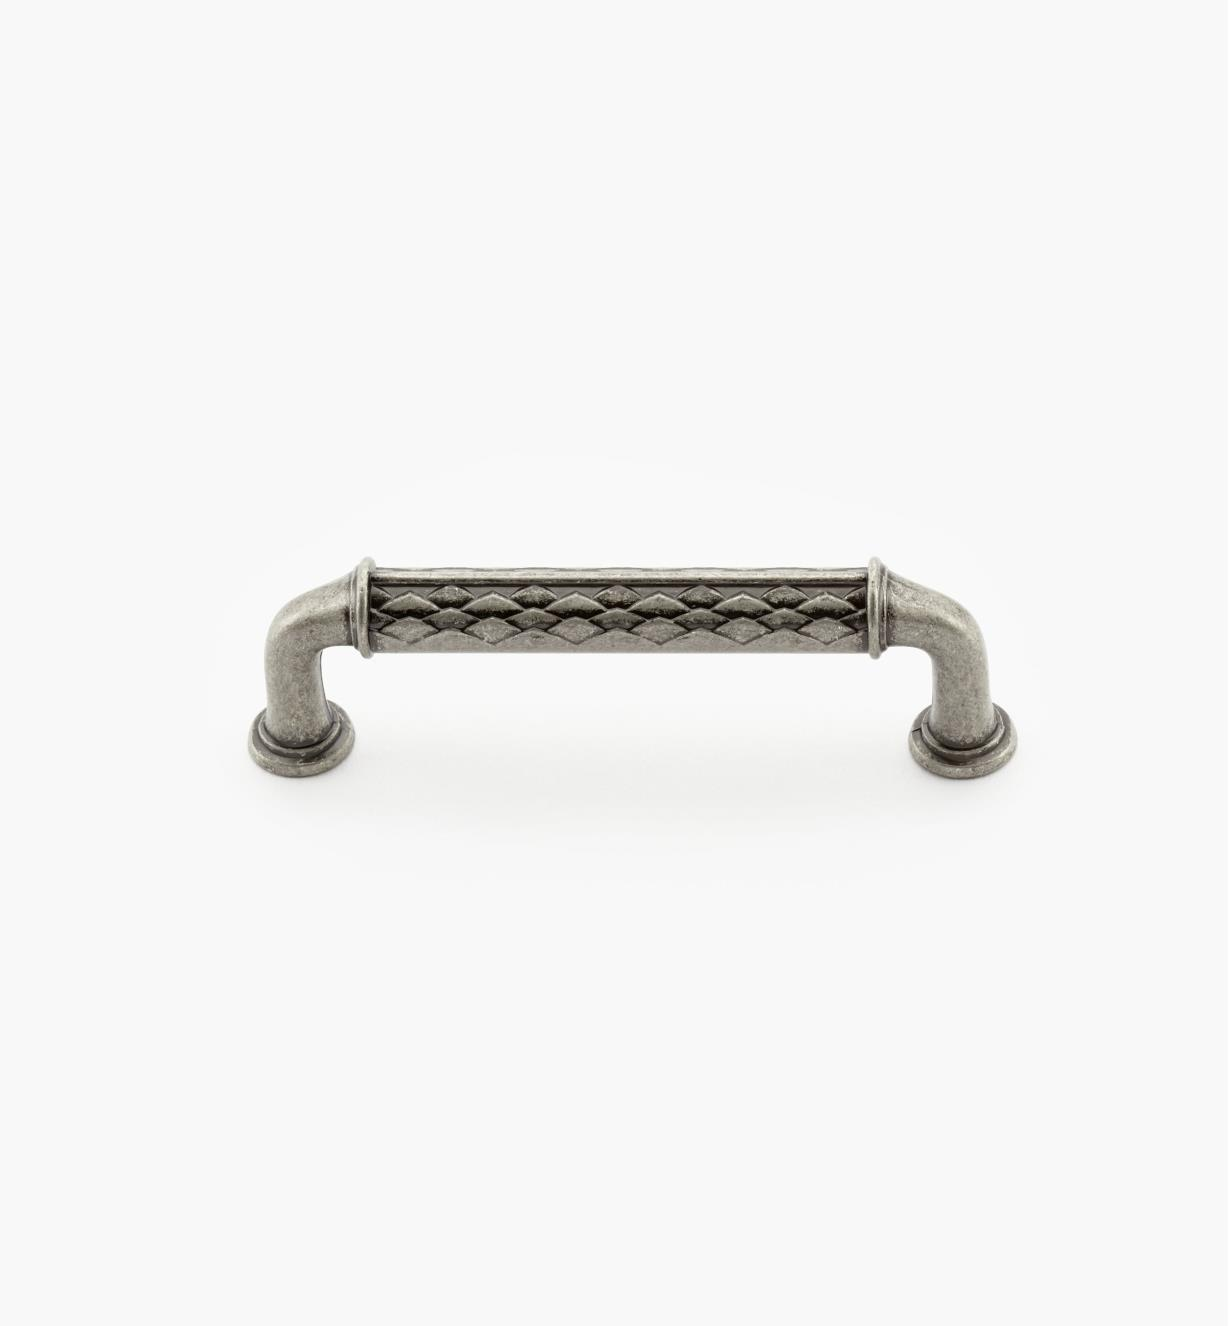 02A1251 - Antique Pewter Handle